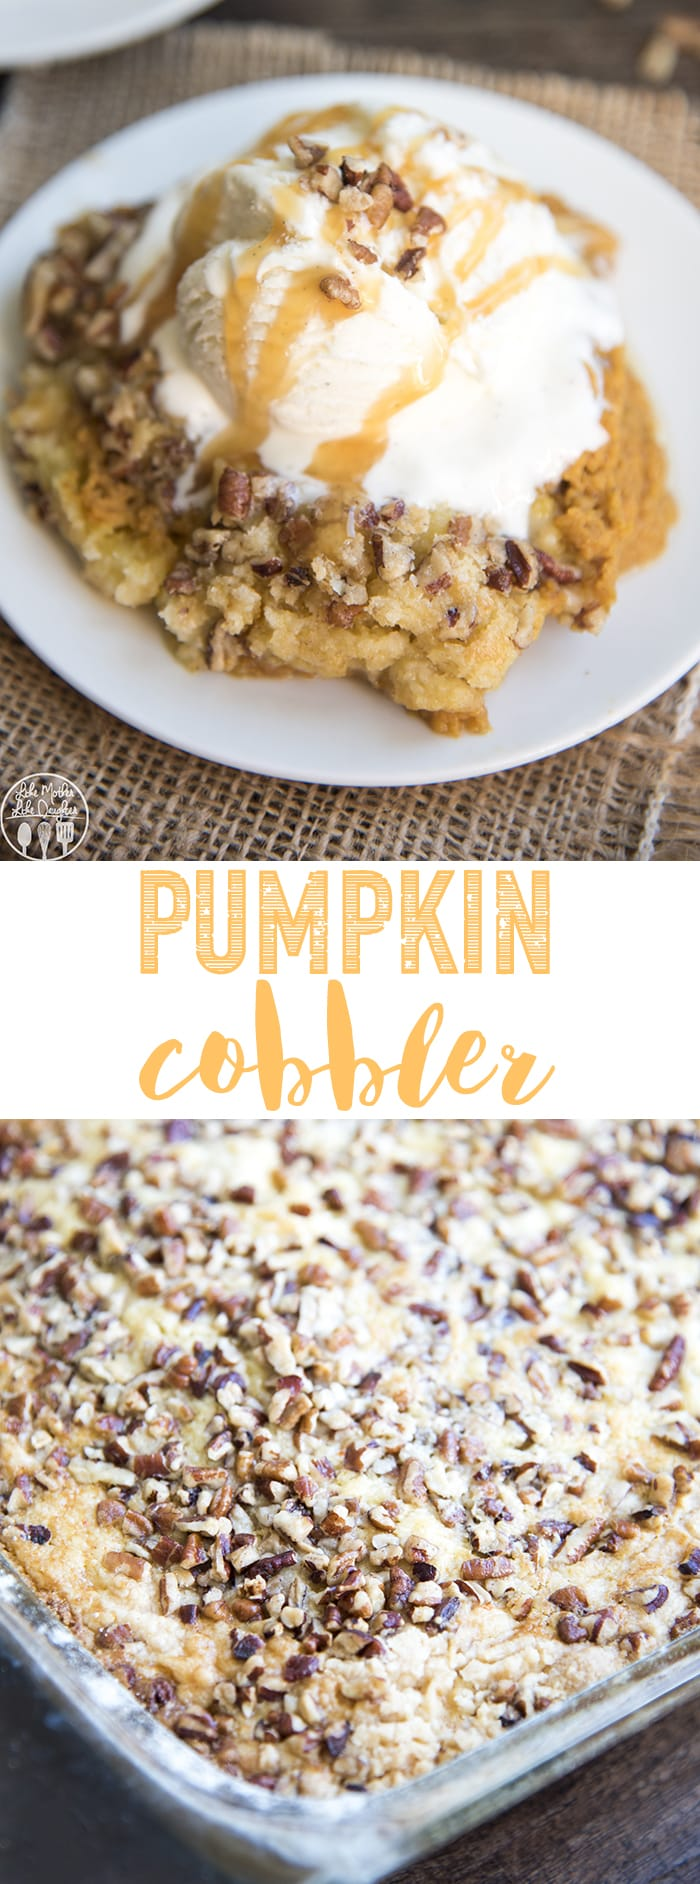 Pumpkin Cobbler is the perfect pumpkin dessert served warm with a big scoop of vanilla ice cream!